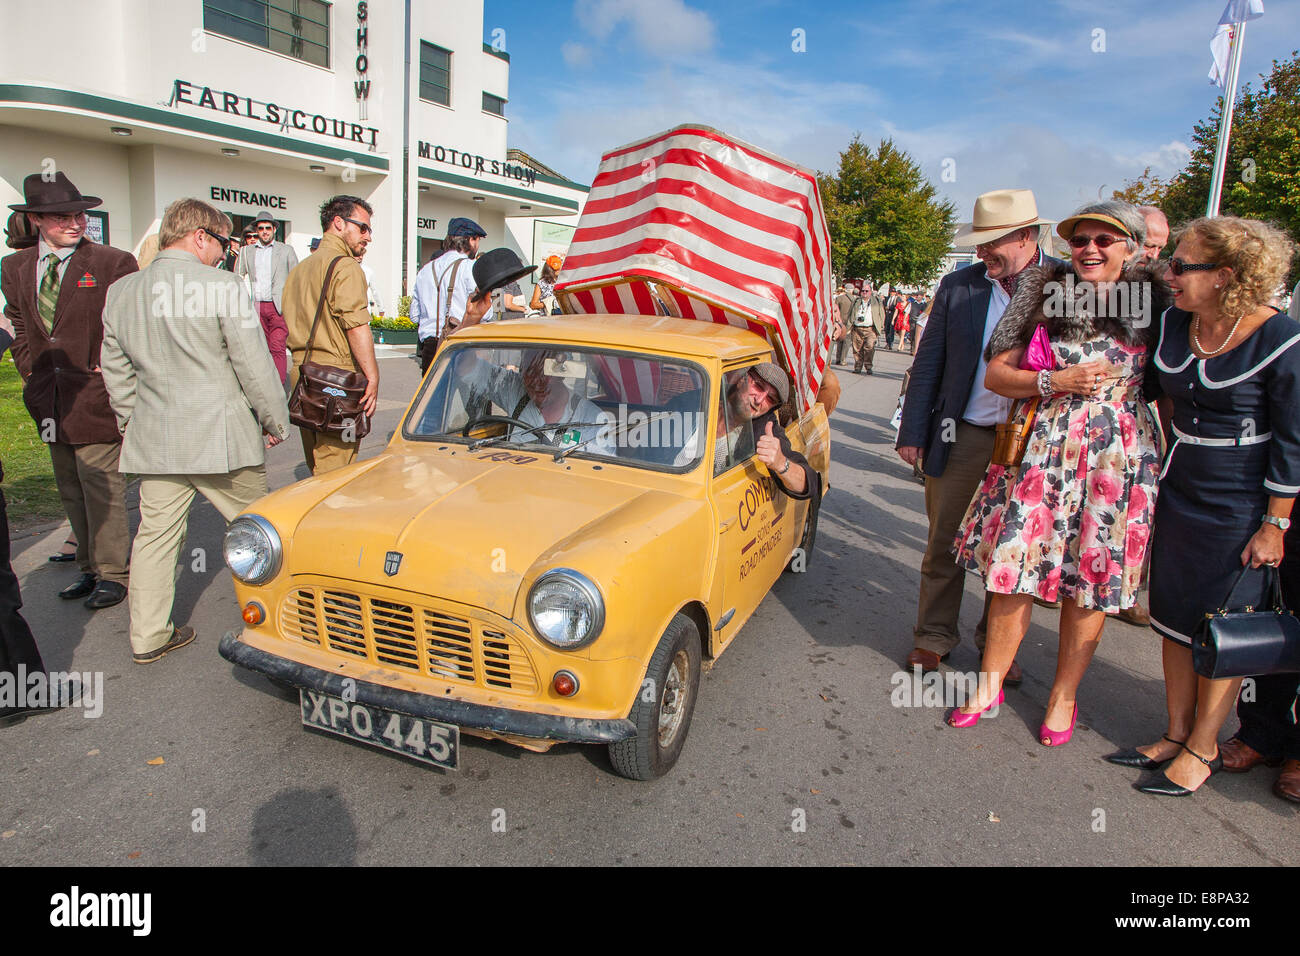 Workers in a vintage classic car Mini Van at the Goodwood Revival 2014, West Sussex, UK Stock Photo